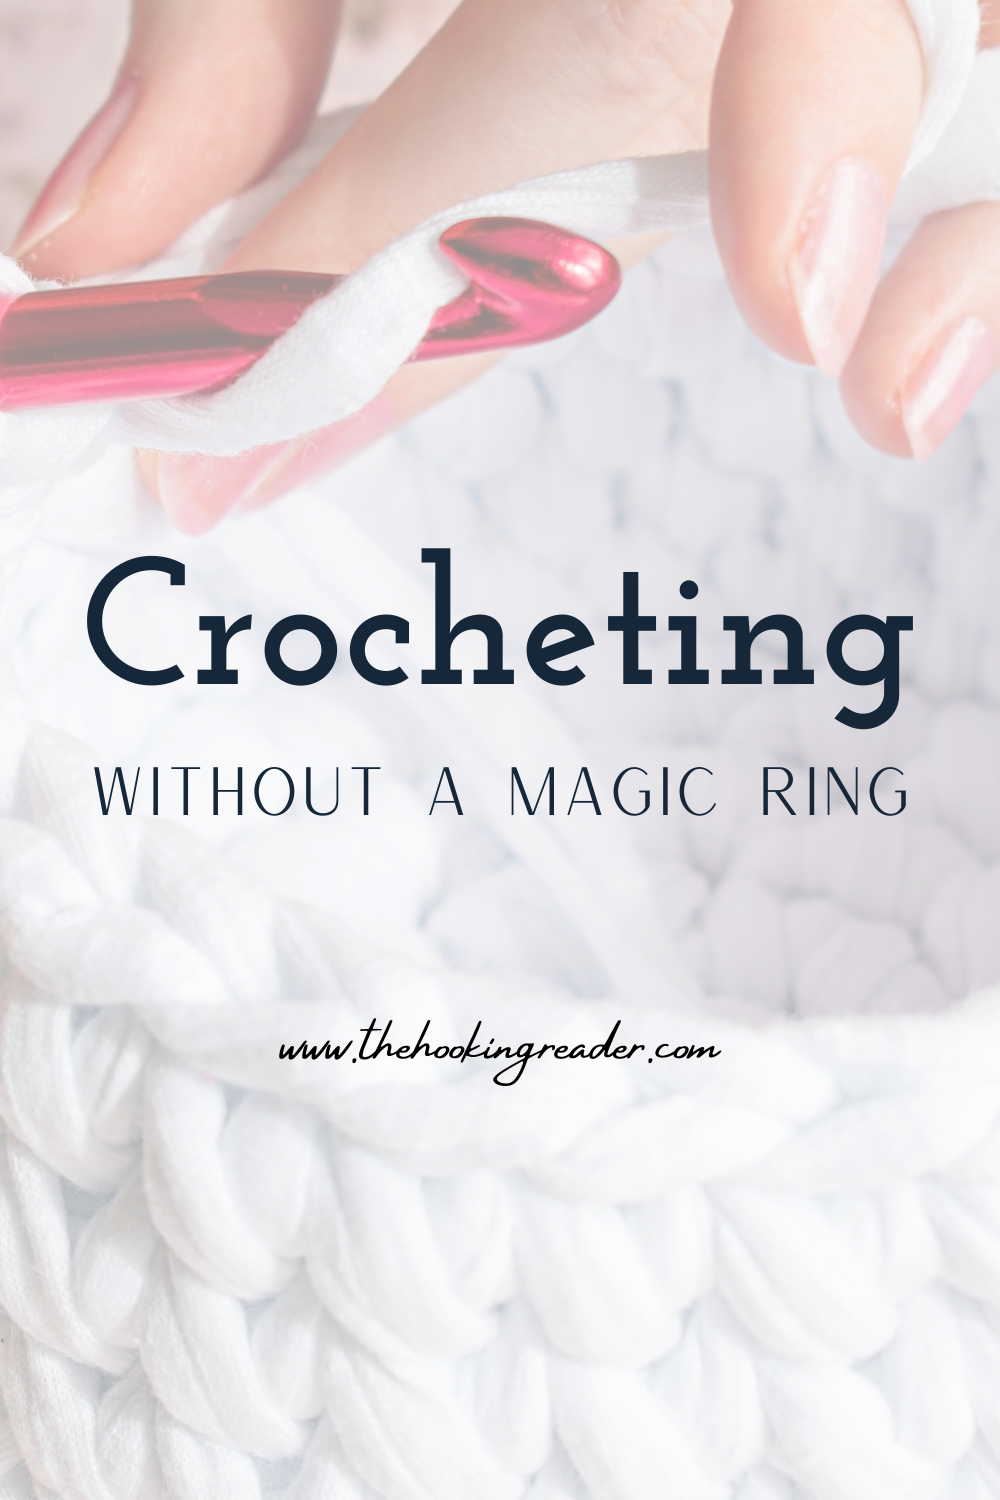 Crocheting Without a Magic Ring